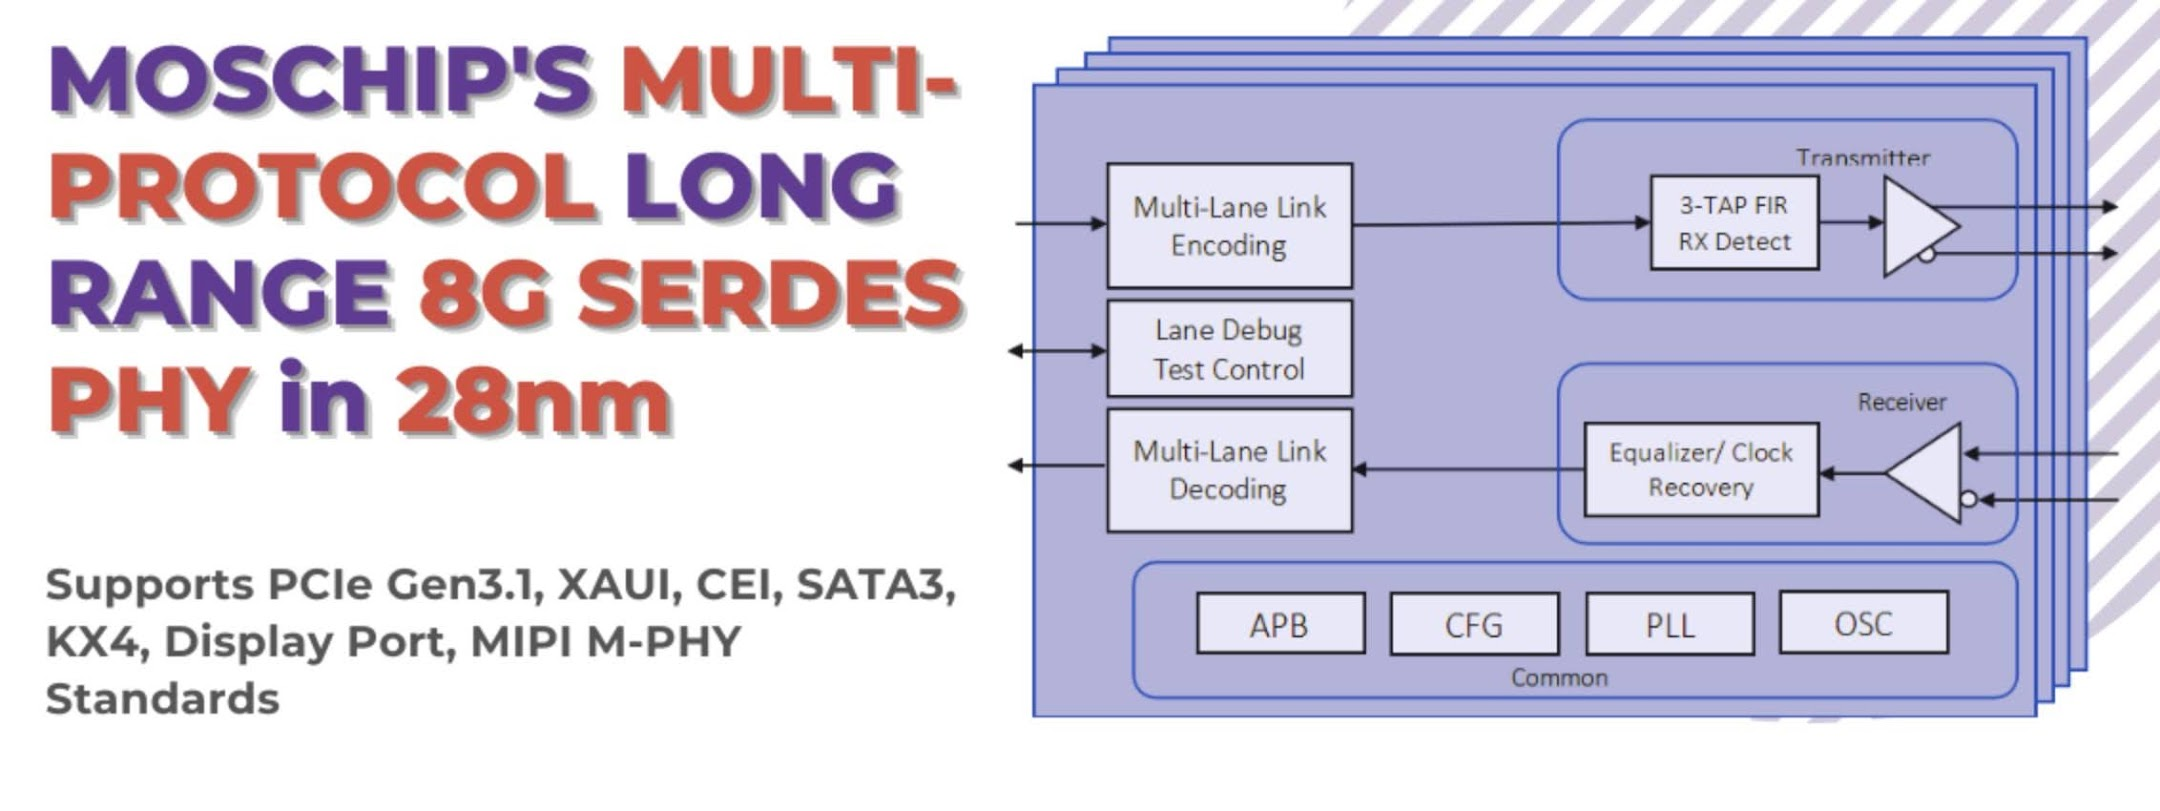 Multi-Protocol Long Range 8G SerDes PHY in 28nm that supports PCIe Gen3.1